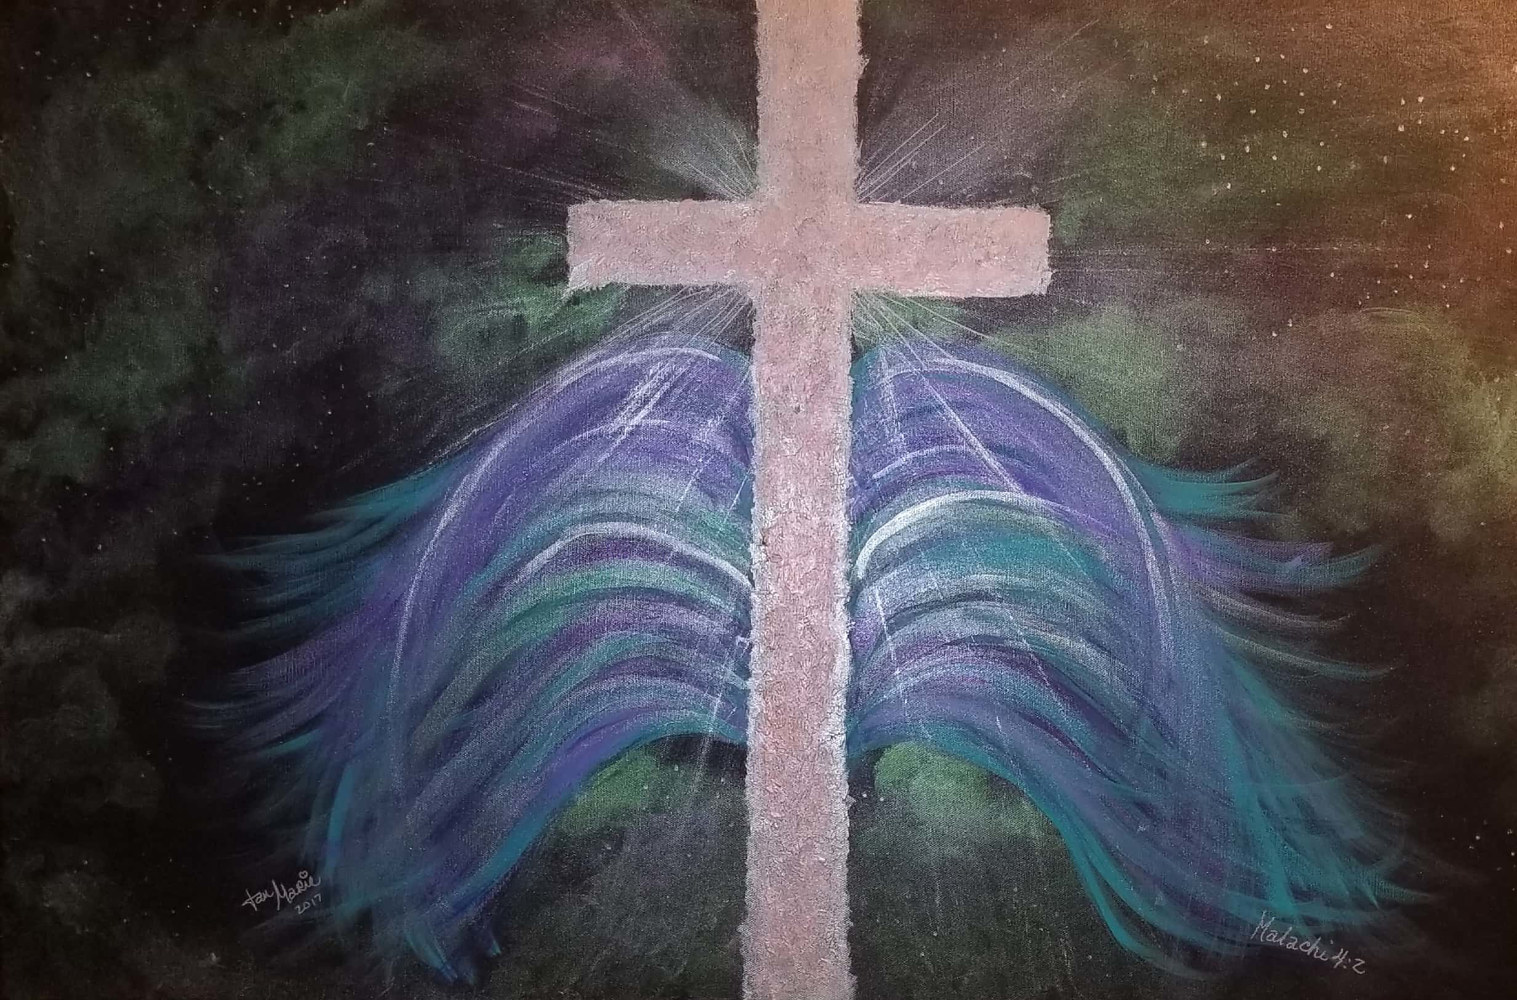 Acrylic painting Healing In His Wings by Jan Wirth